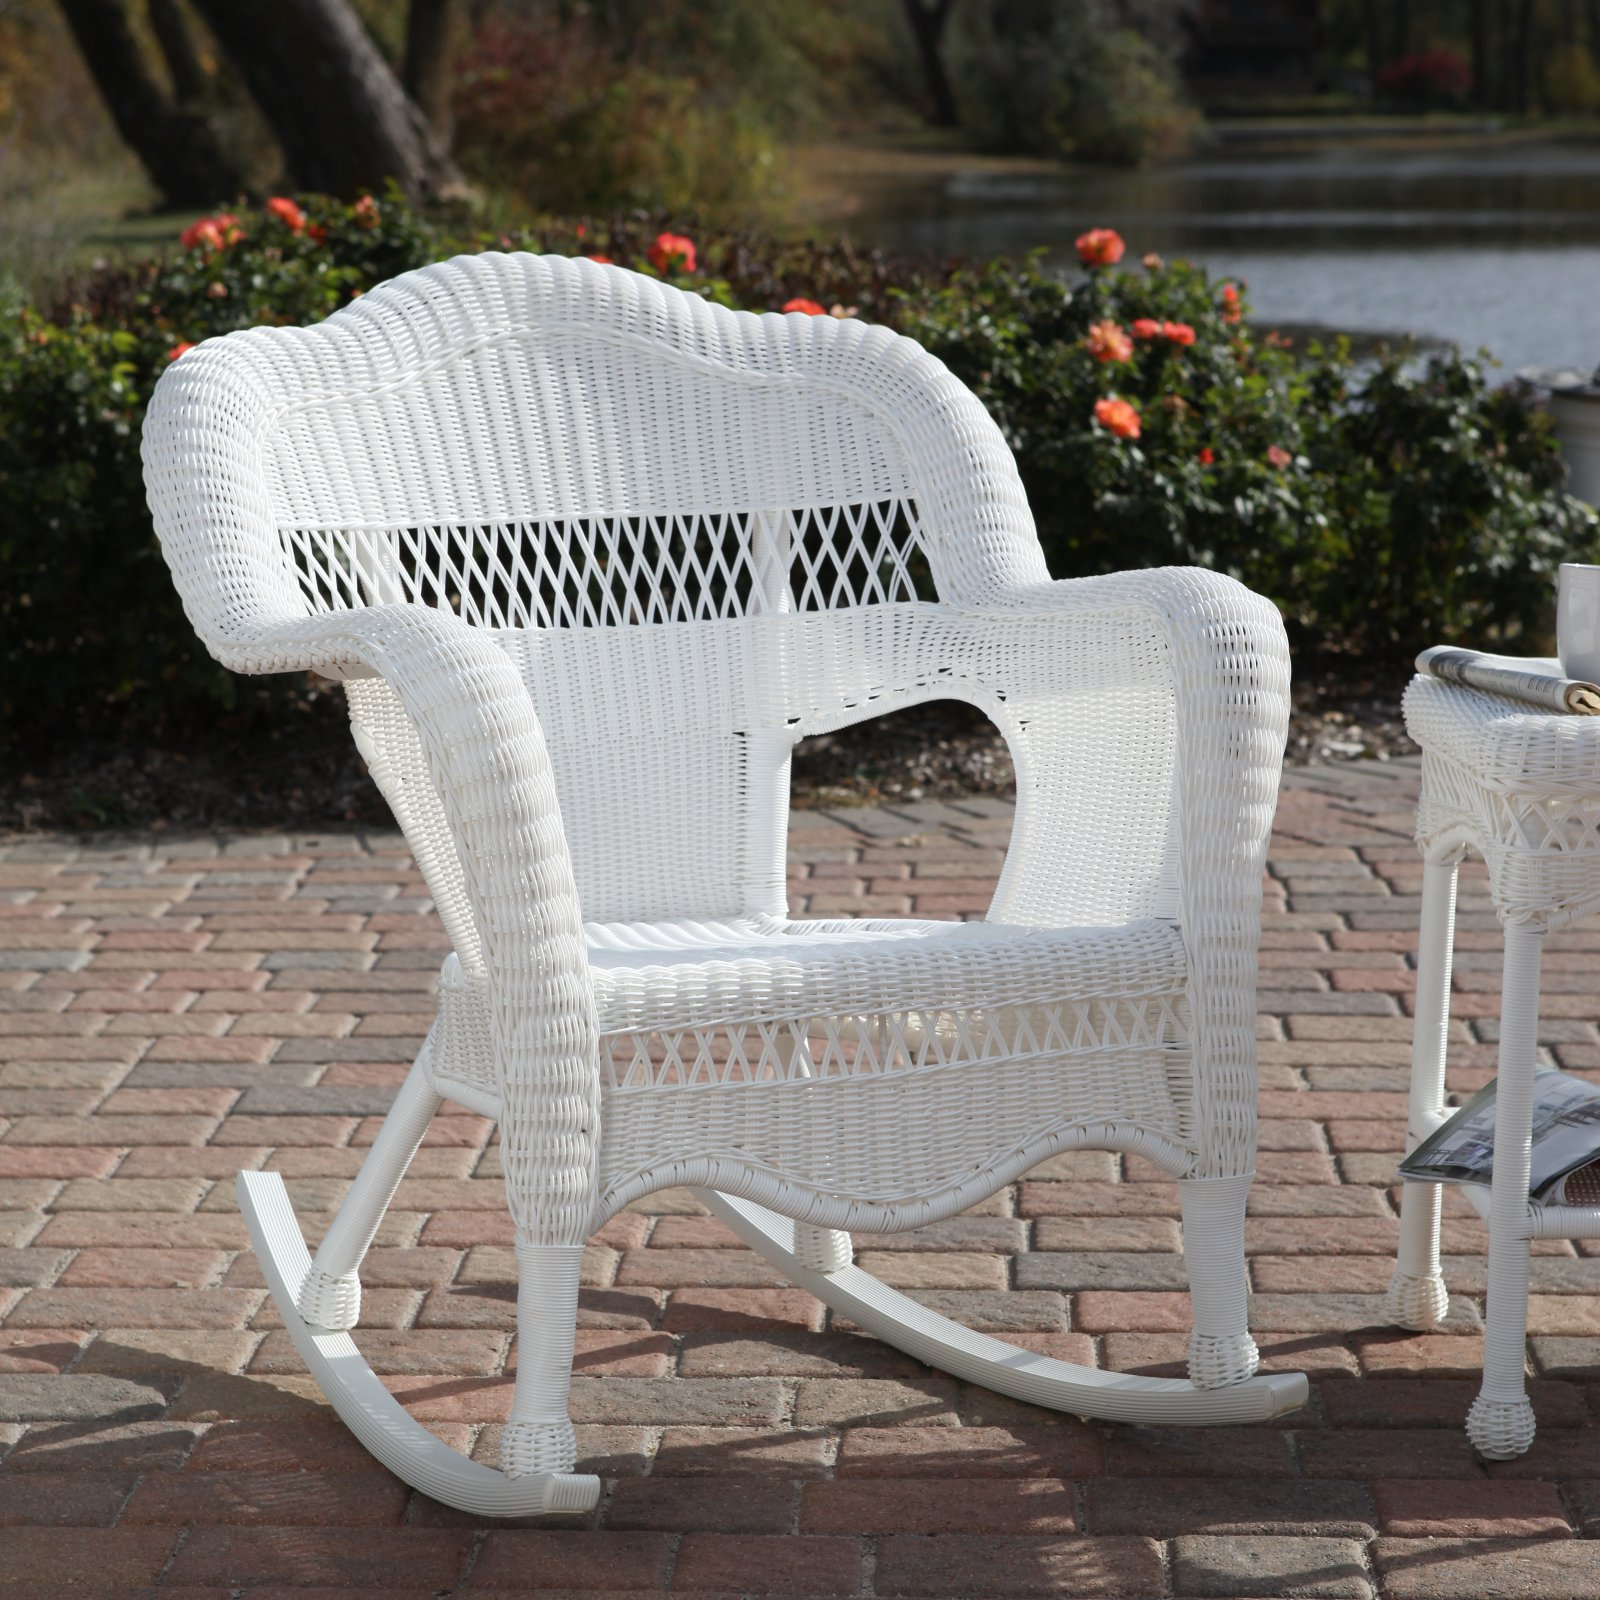 Awesome White Resin Wicker Rocking Chair Patio Furniture   Walmart.com